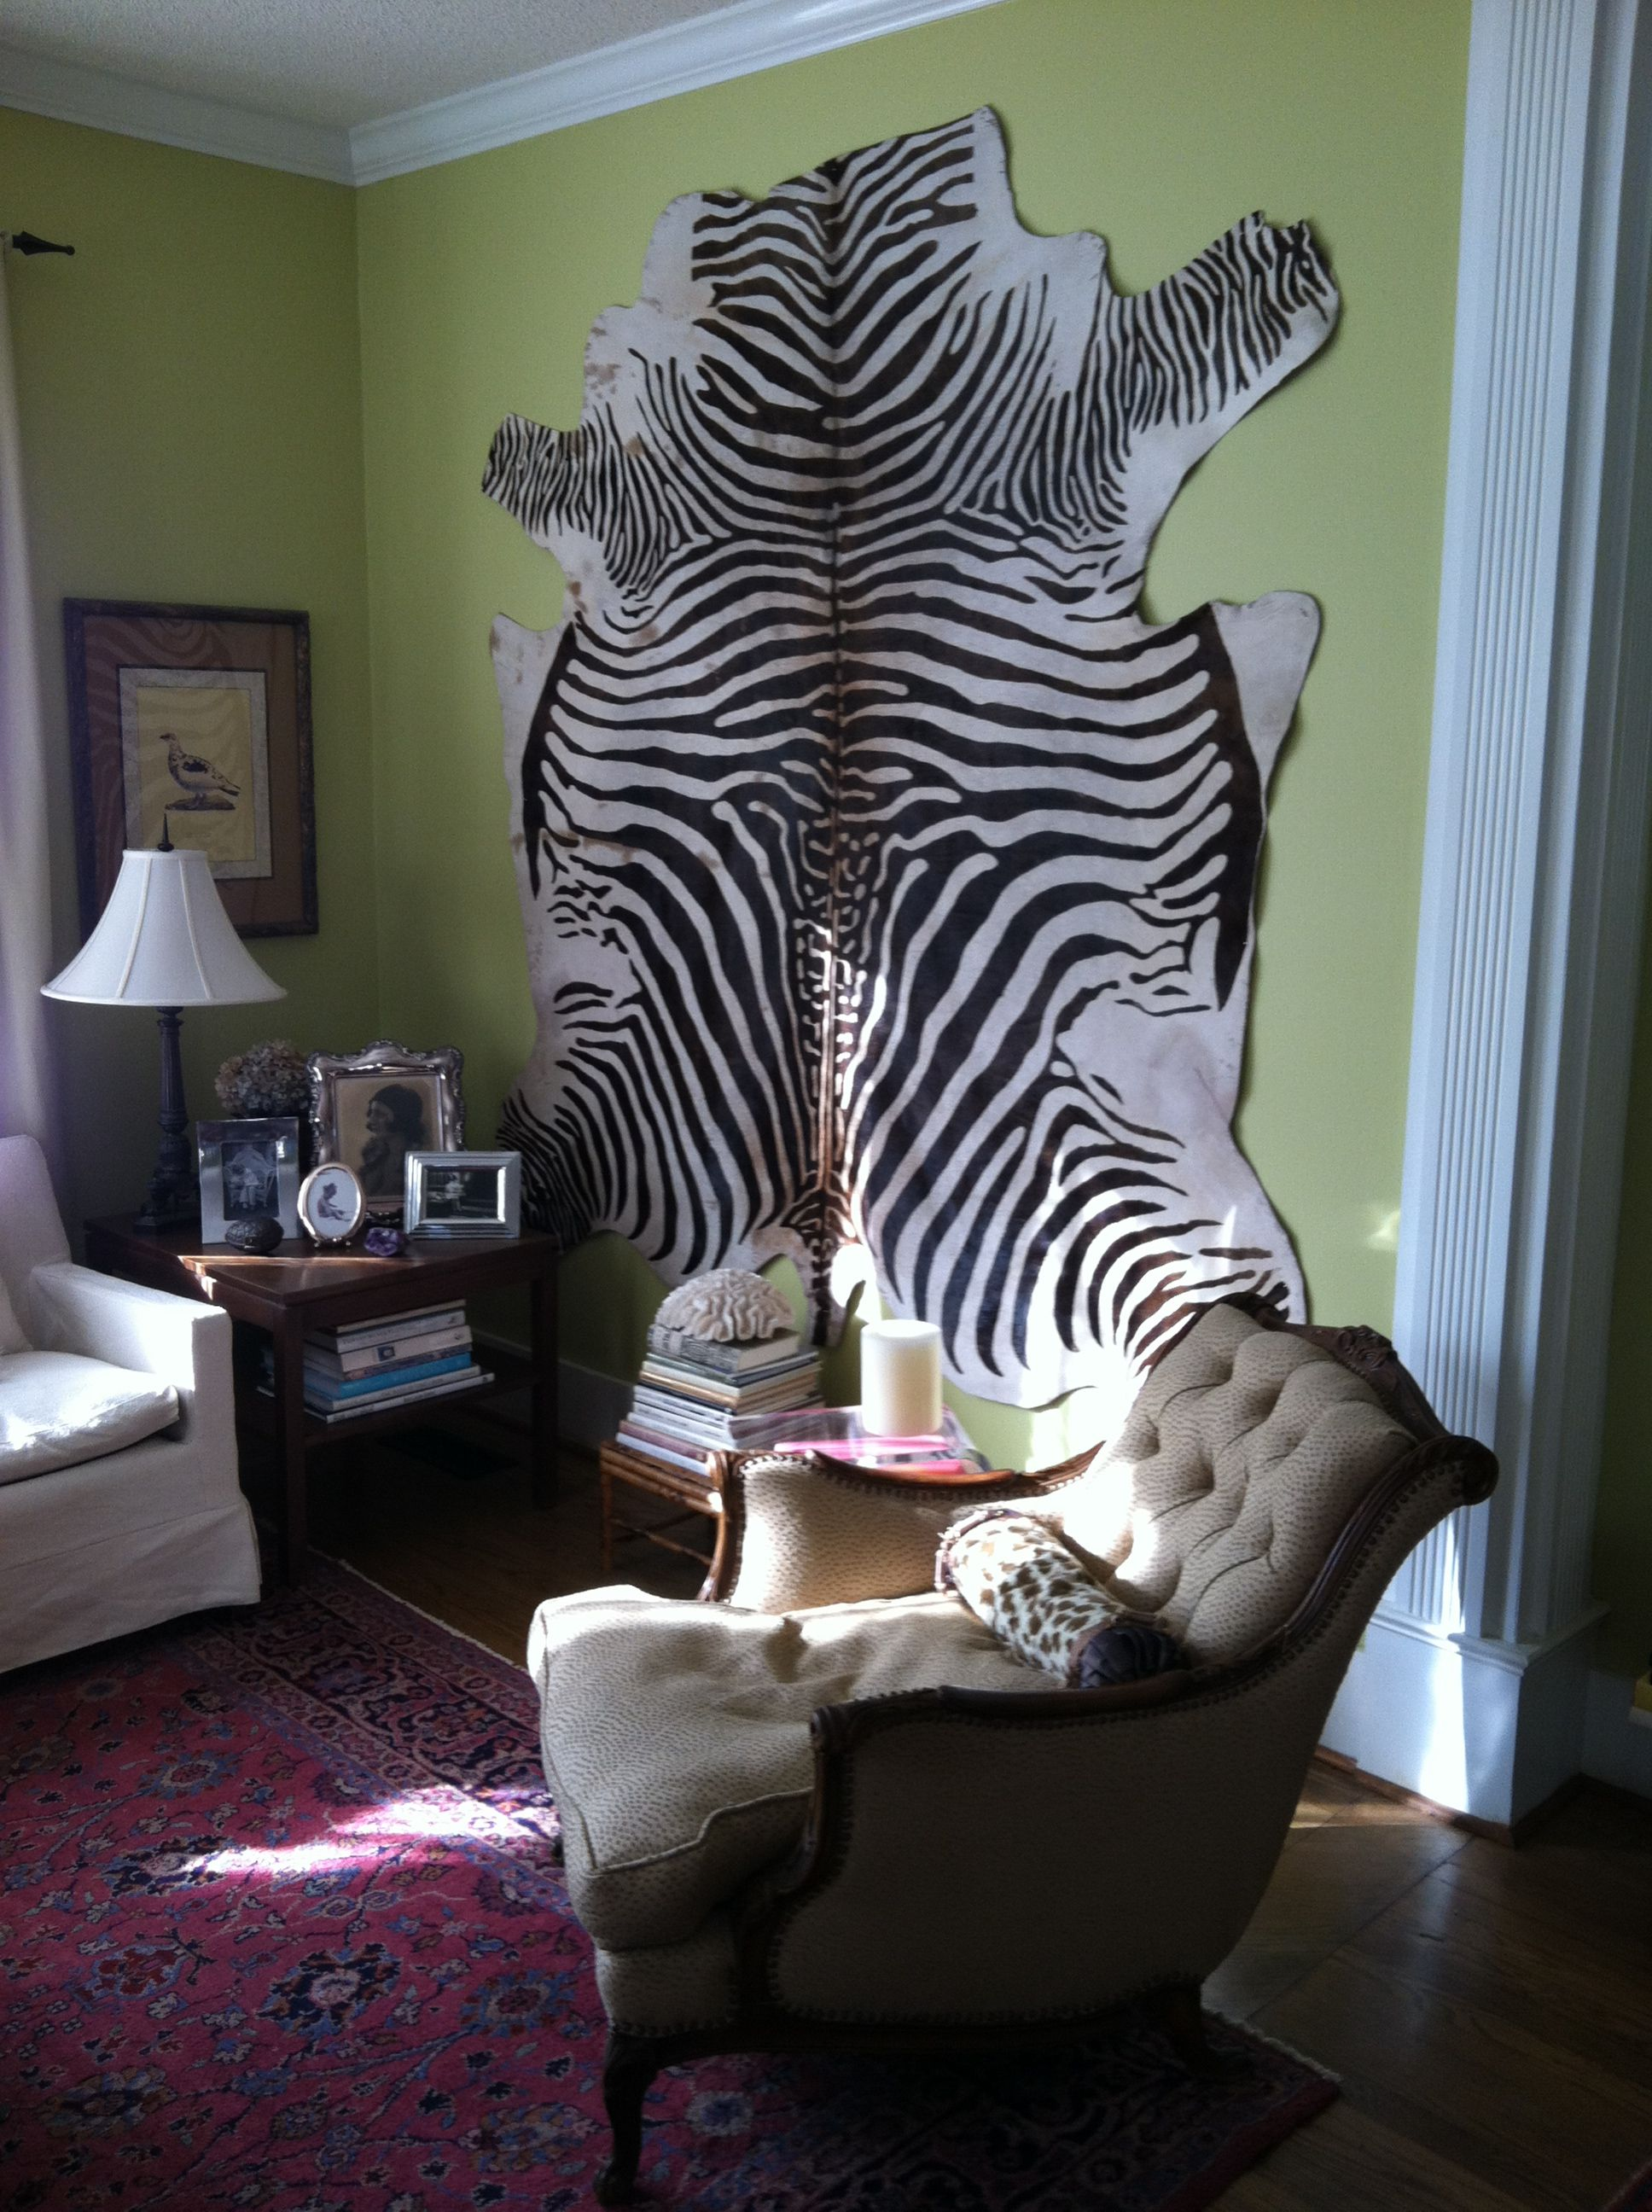 Zebra skin in wall | Zebra, Decor